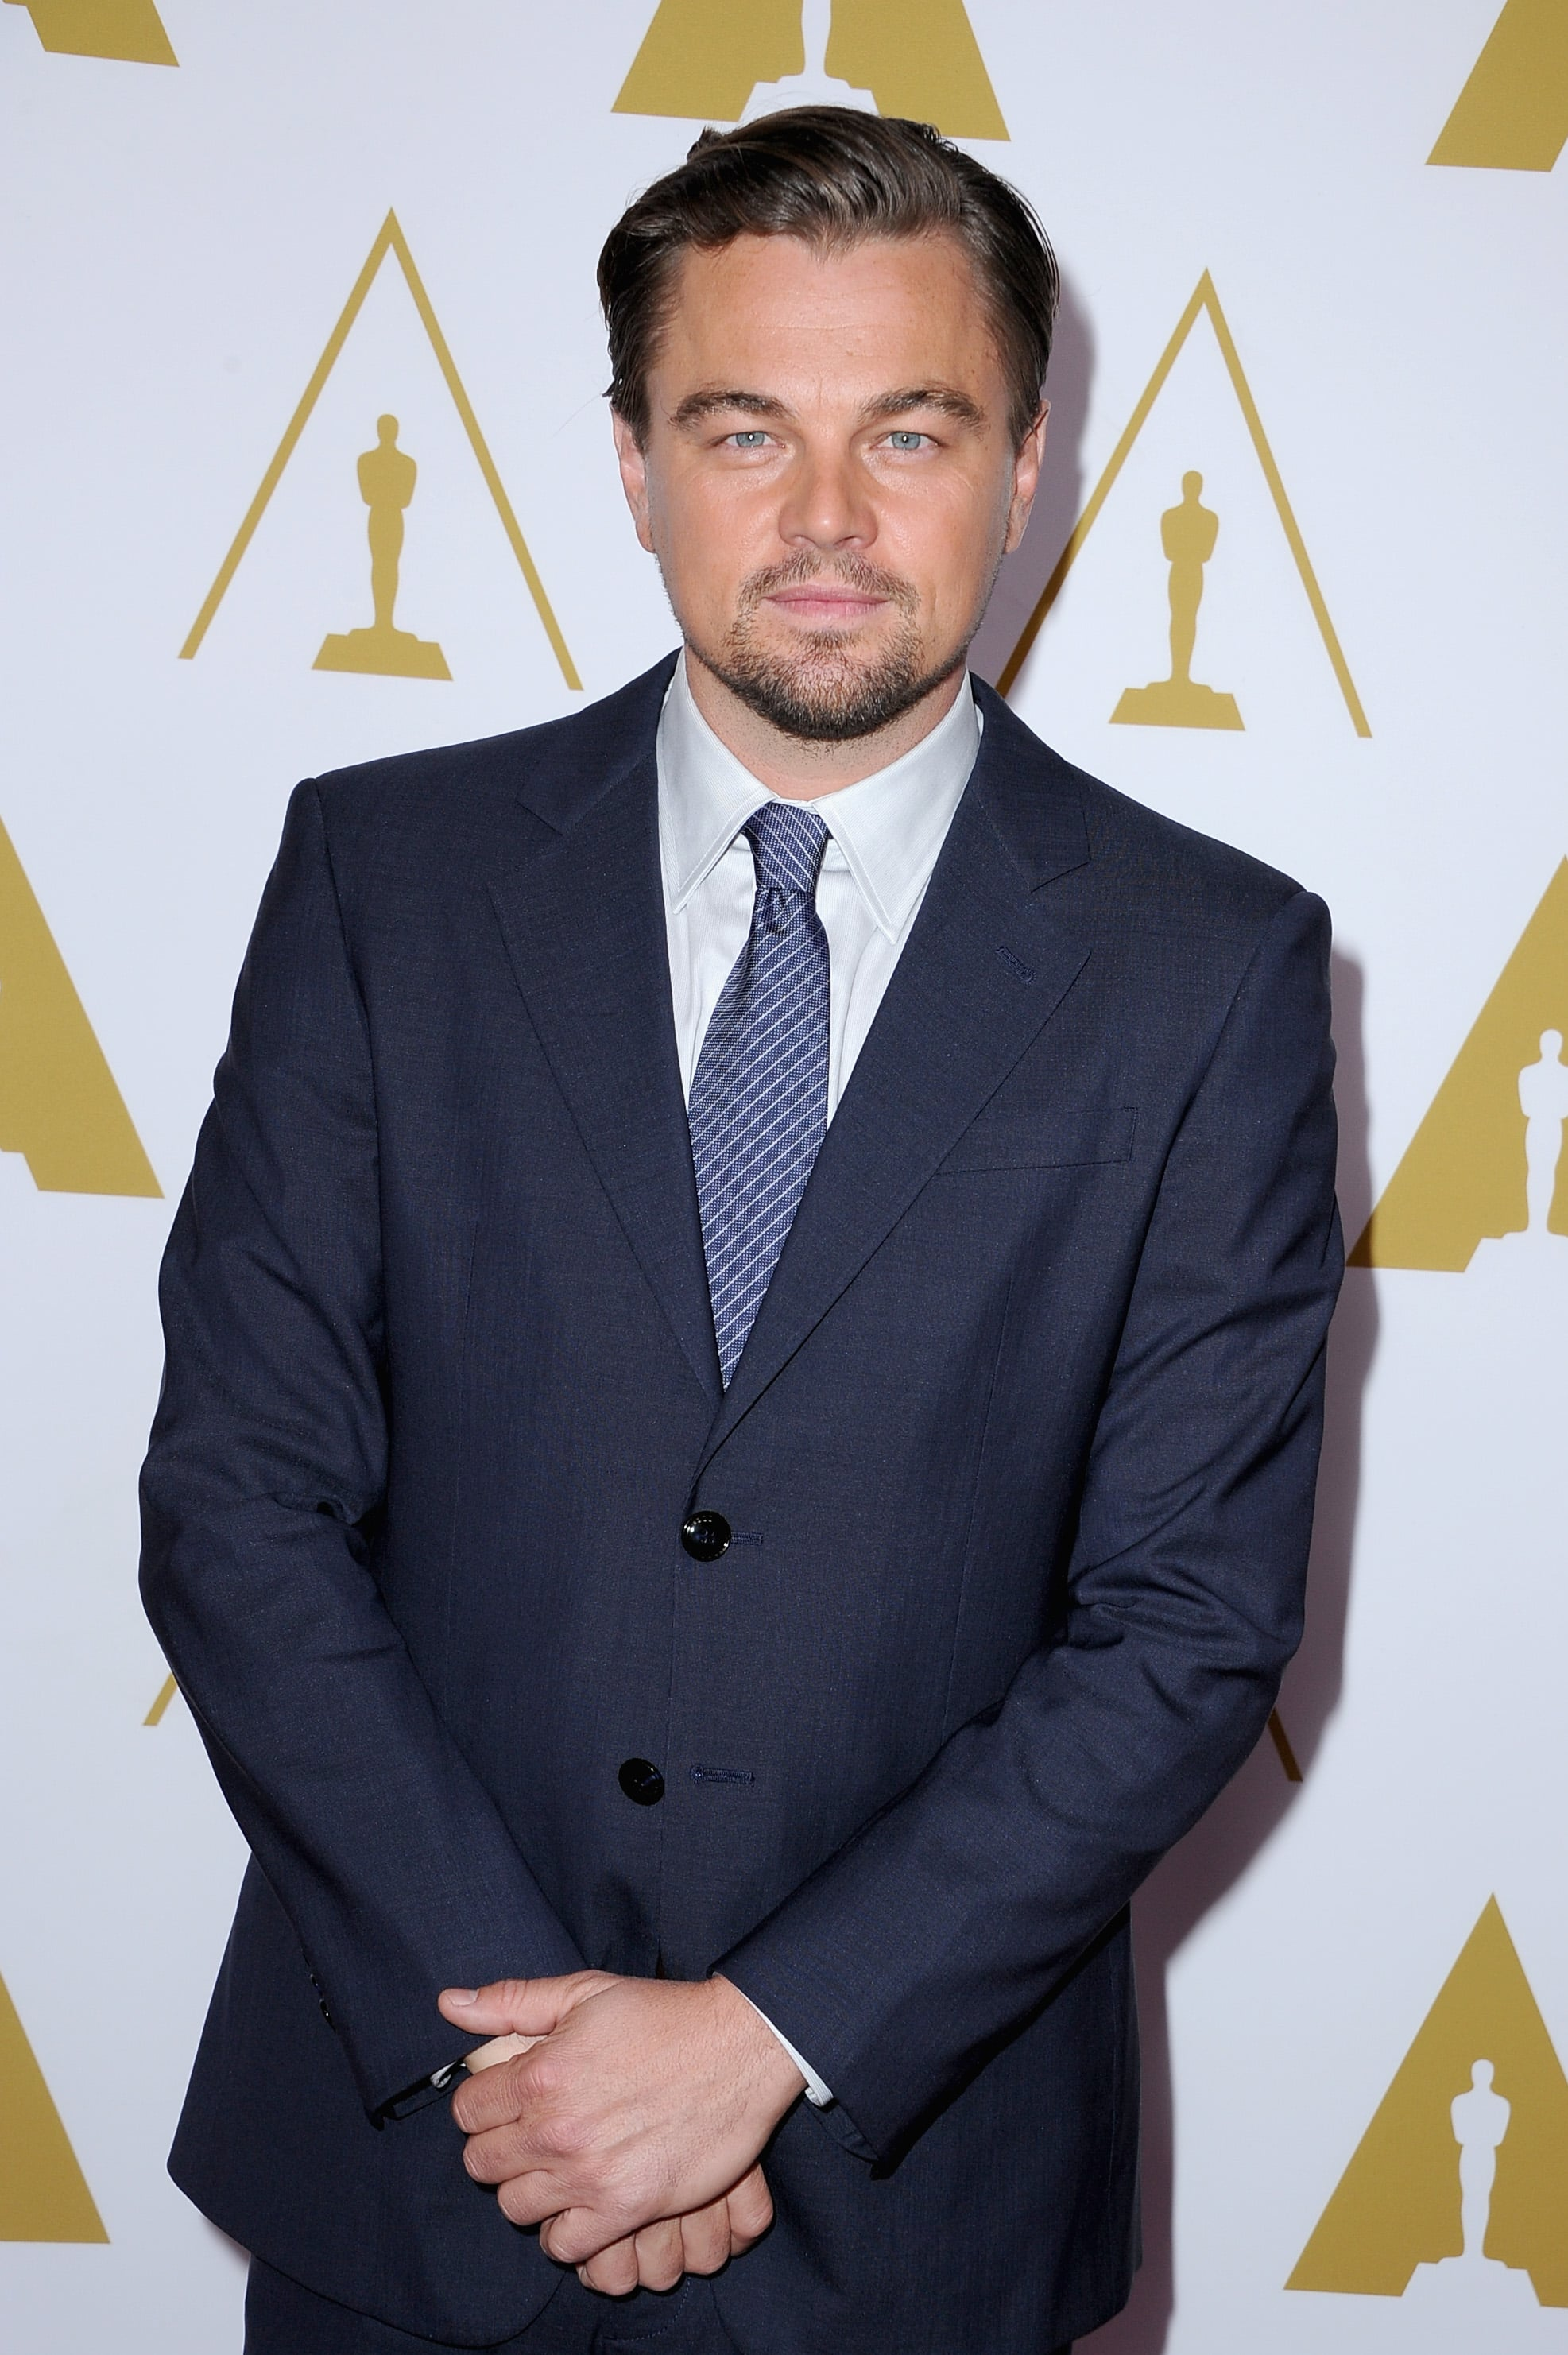 Leonardo DiCaprio brought his handsome self to the luncheon.